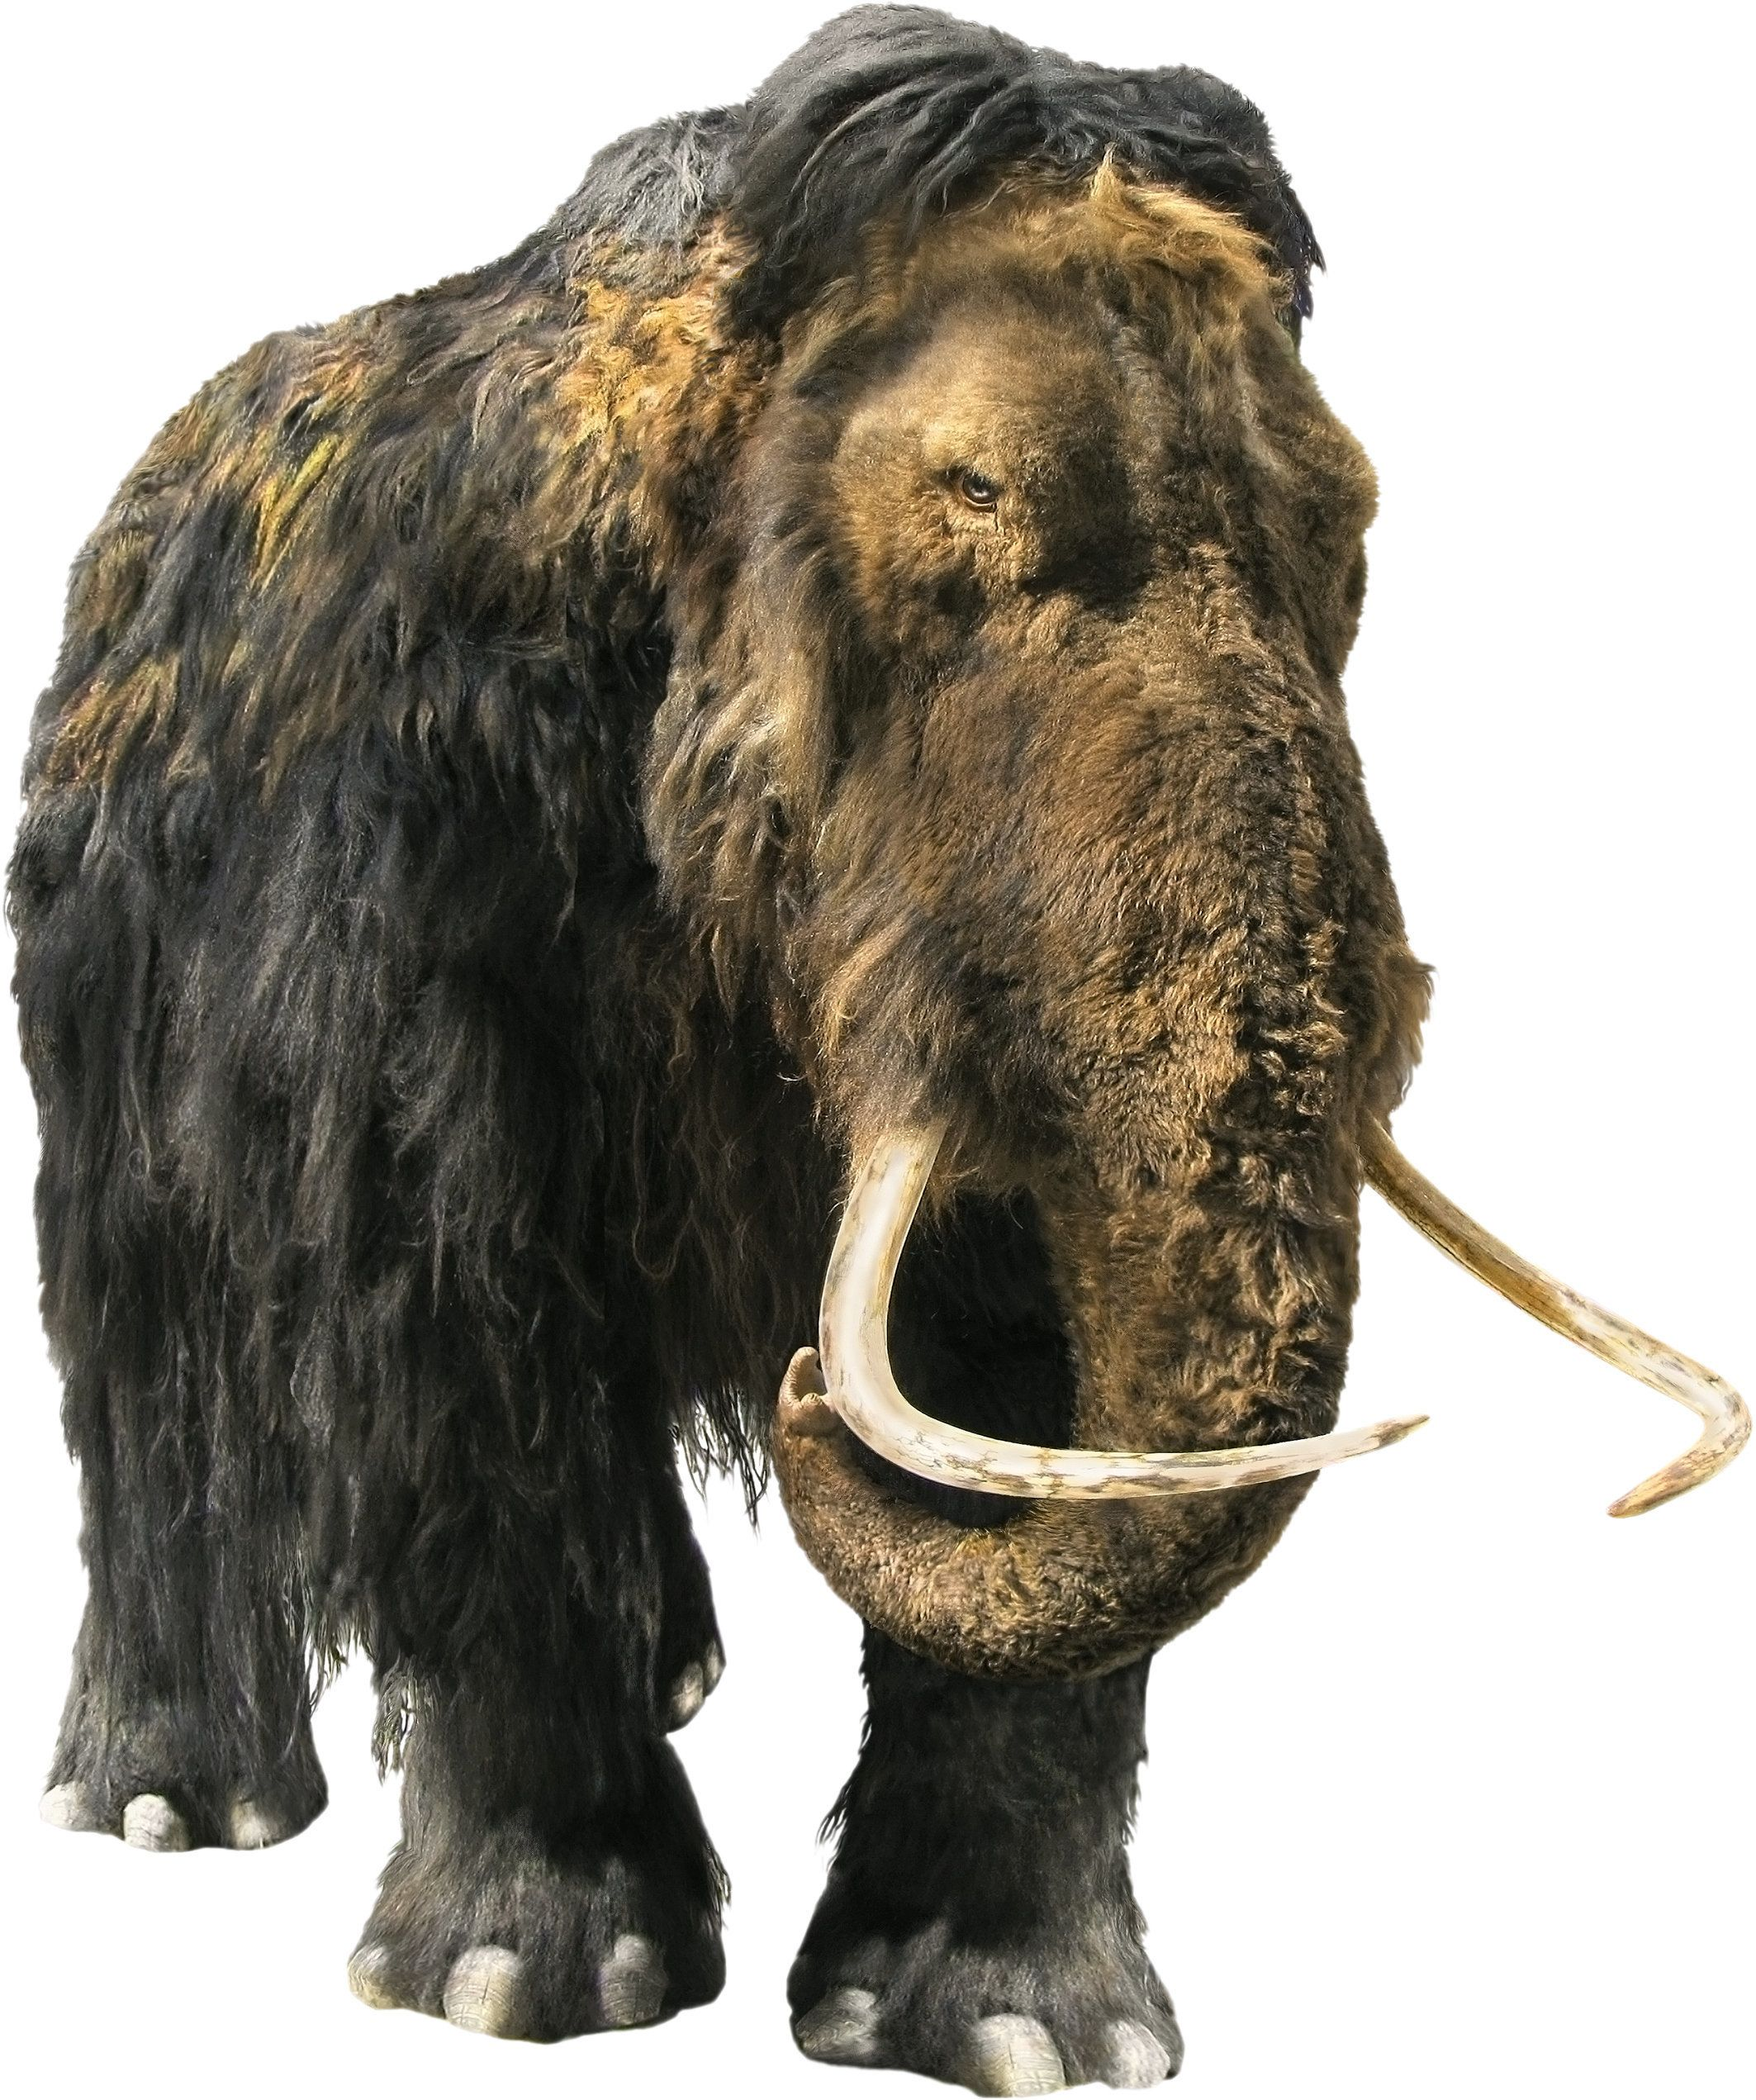 Isolated image of a mammoth on white background.